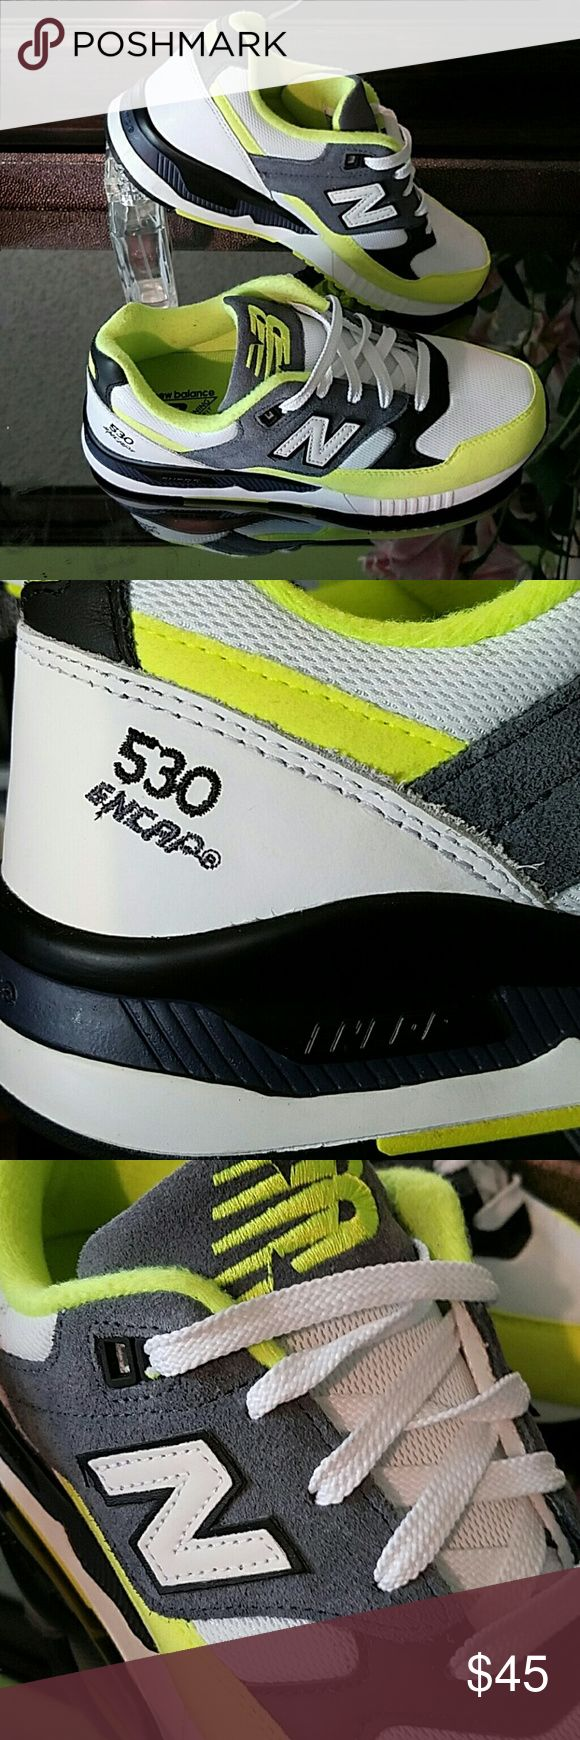 Brand New - Never Worn. White New Balance with black and neon accents. New Balance Shoes Athletic Shoes